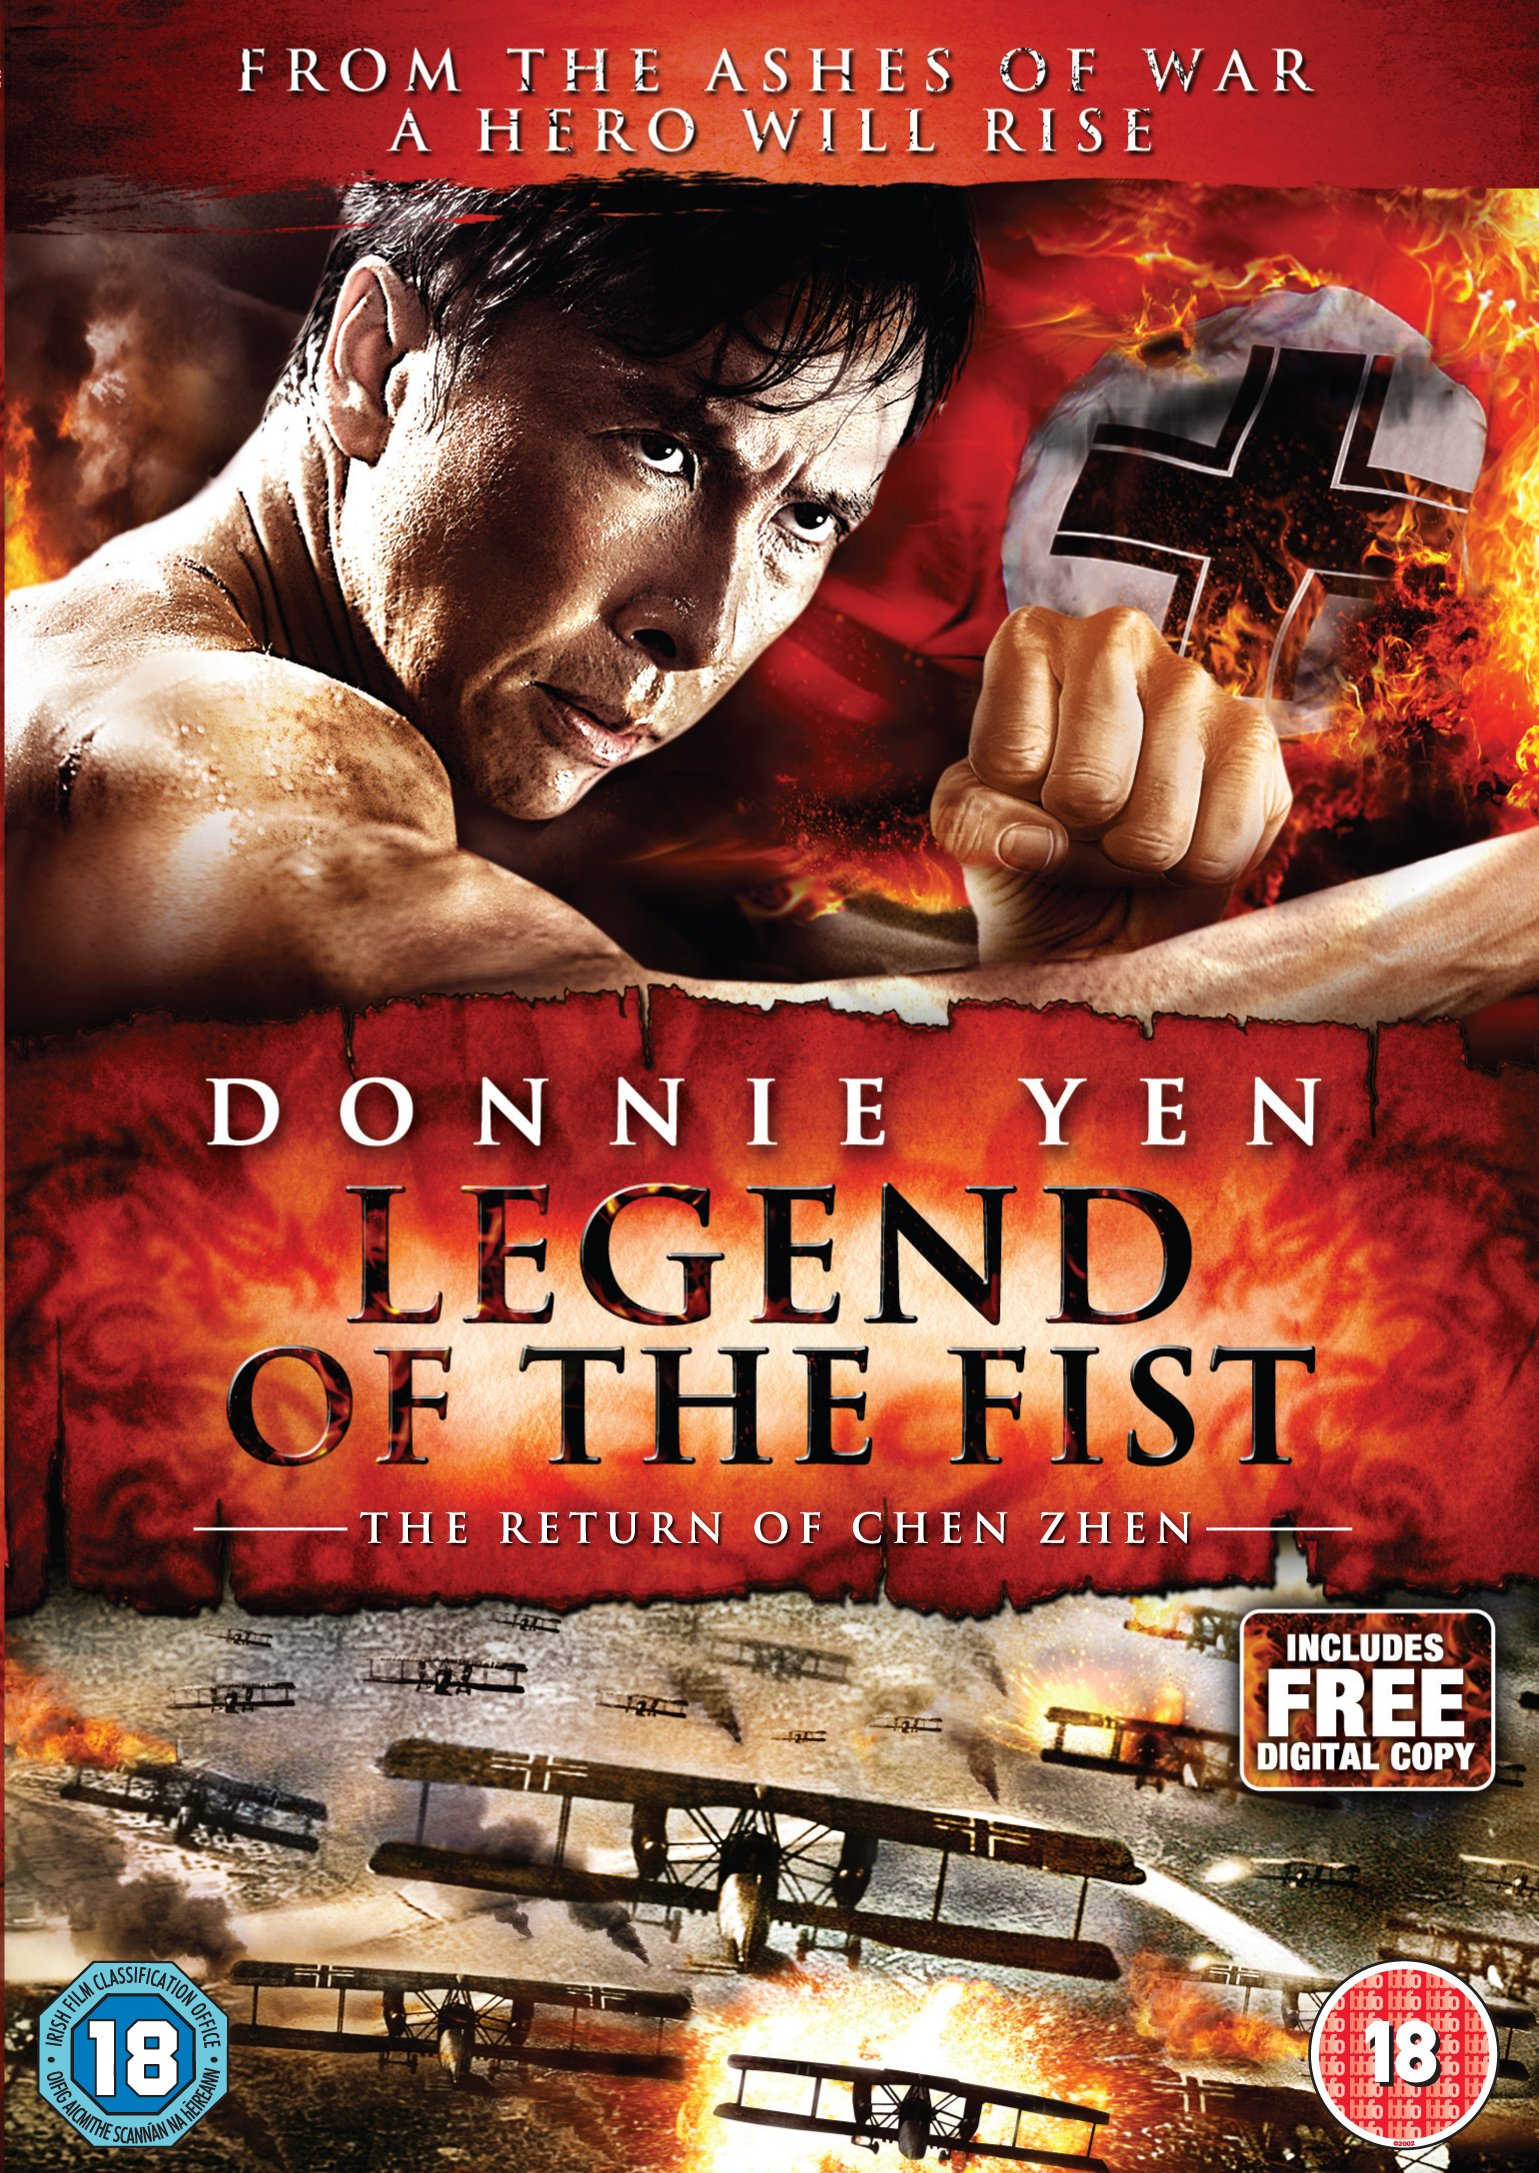 Legend of the fist chen zhen